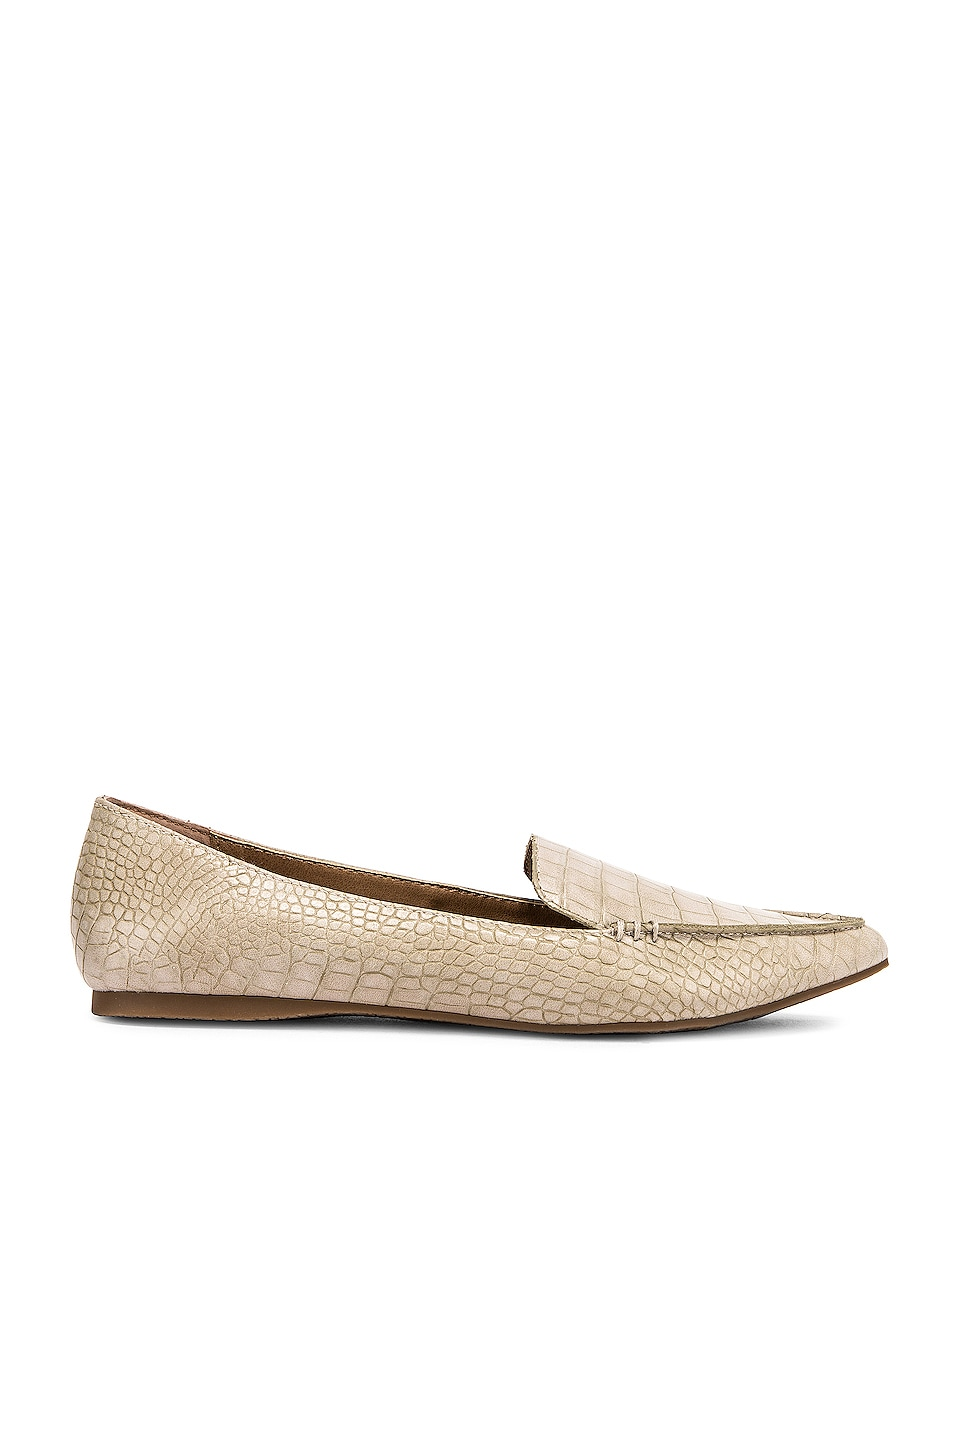 Steve Madden Feather Loafer in Taupe Crocco